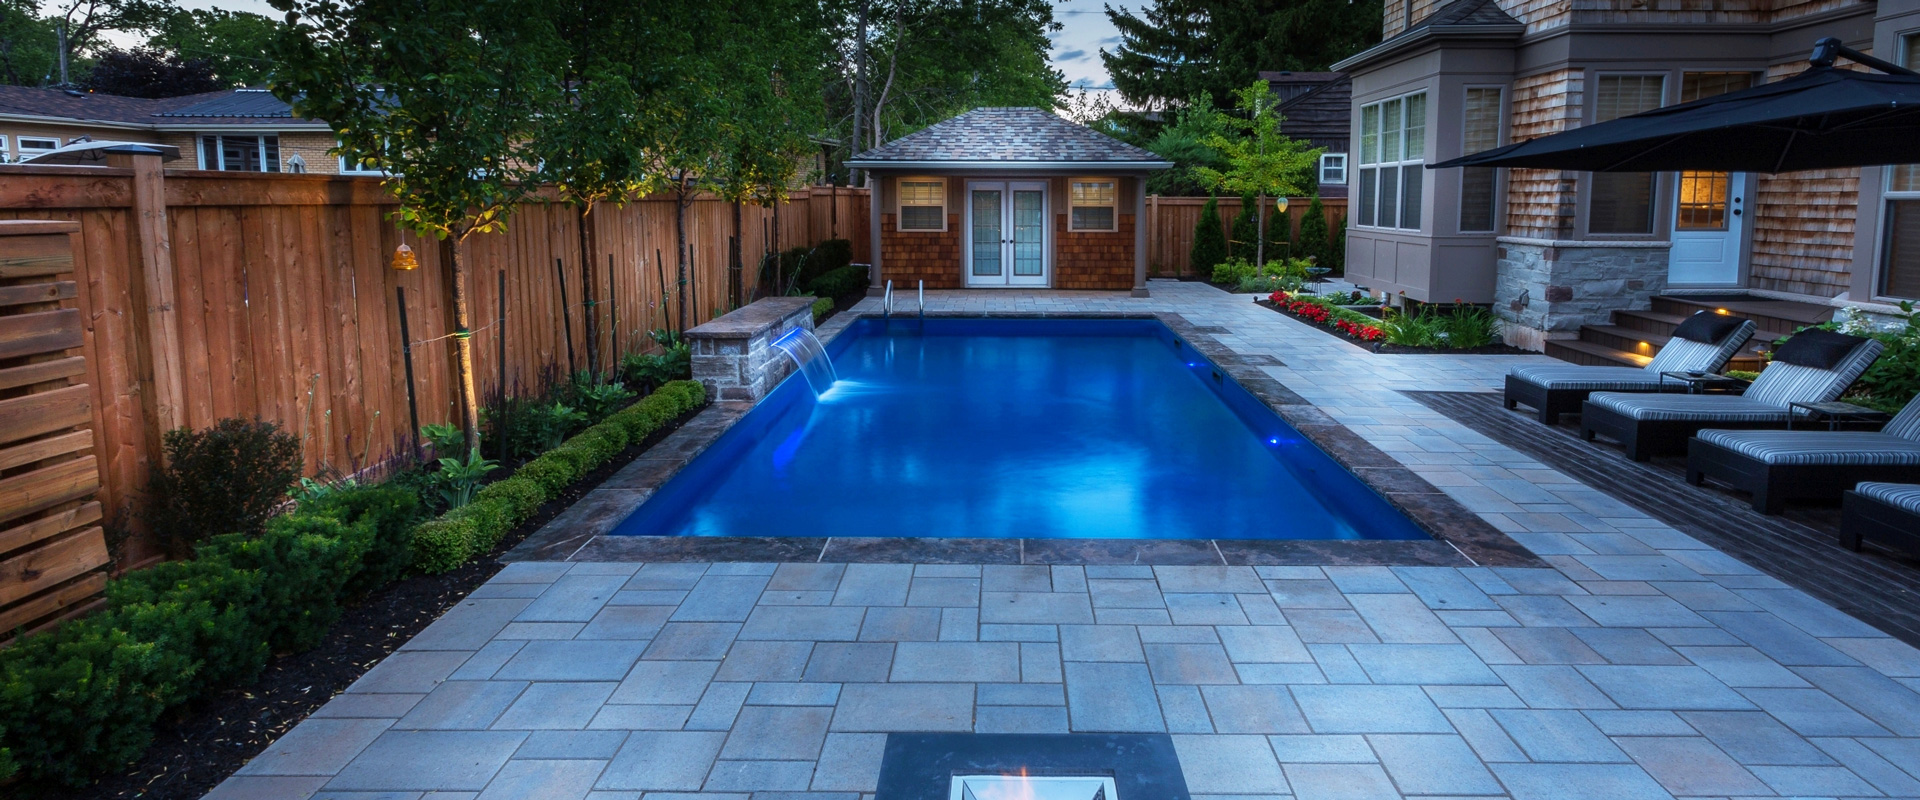 Inground pool customer galleries pioneer family pools for Pool showcase